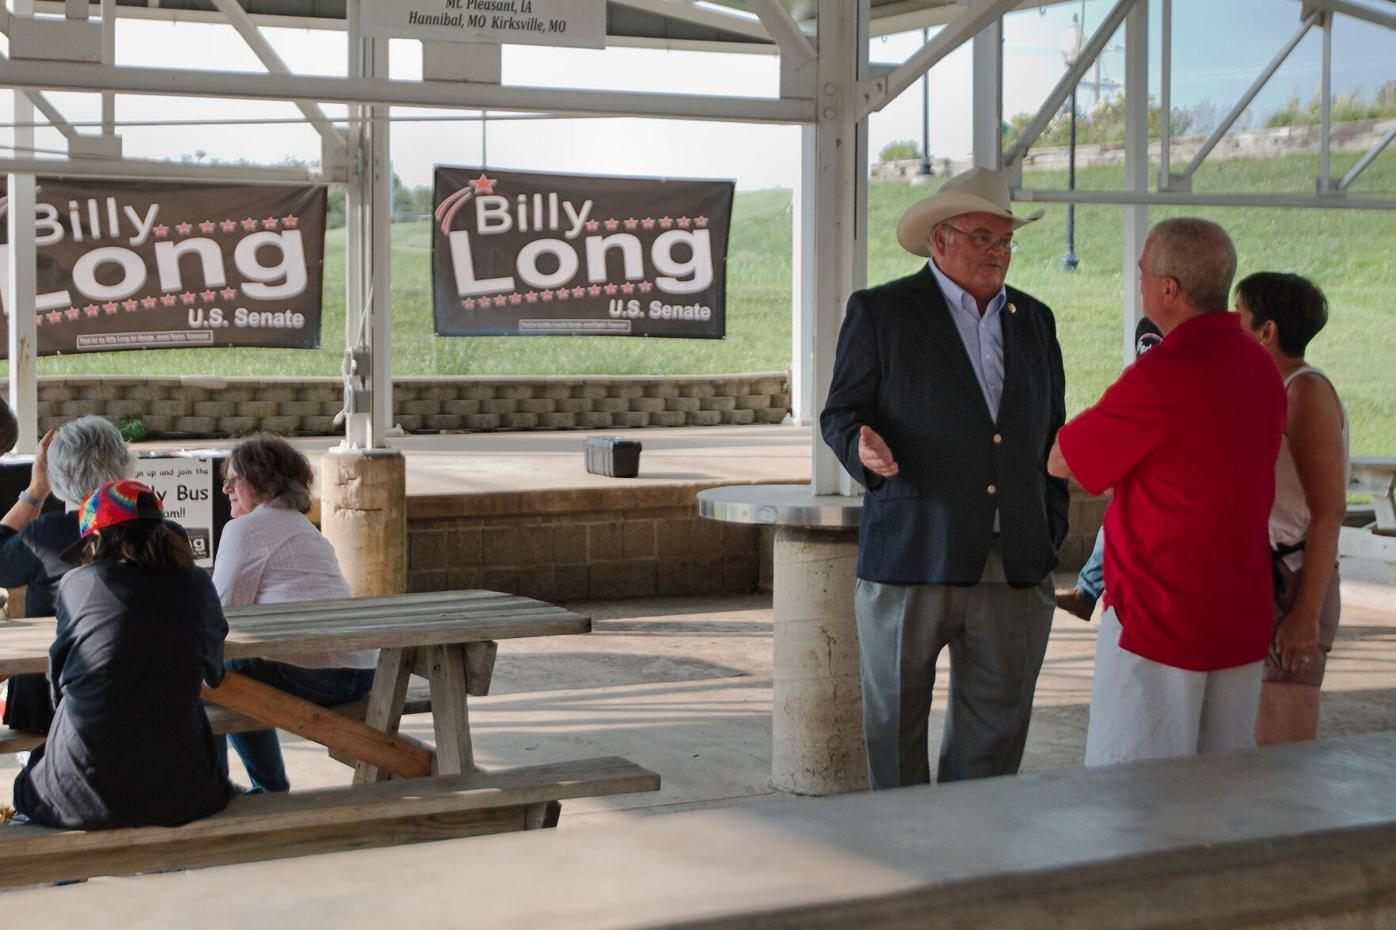 Rep. Billy Long stops in Hannibal on the campaign trail for the U.S. Senate